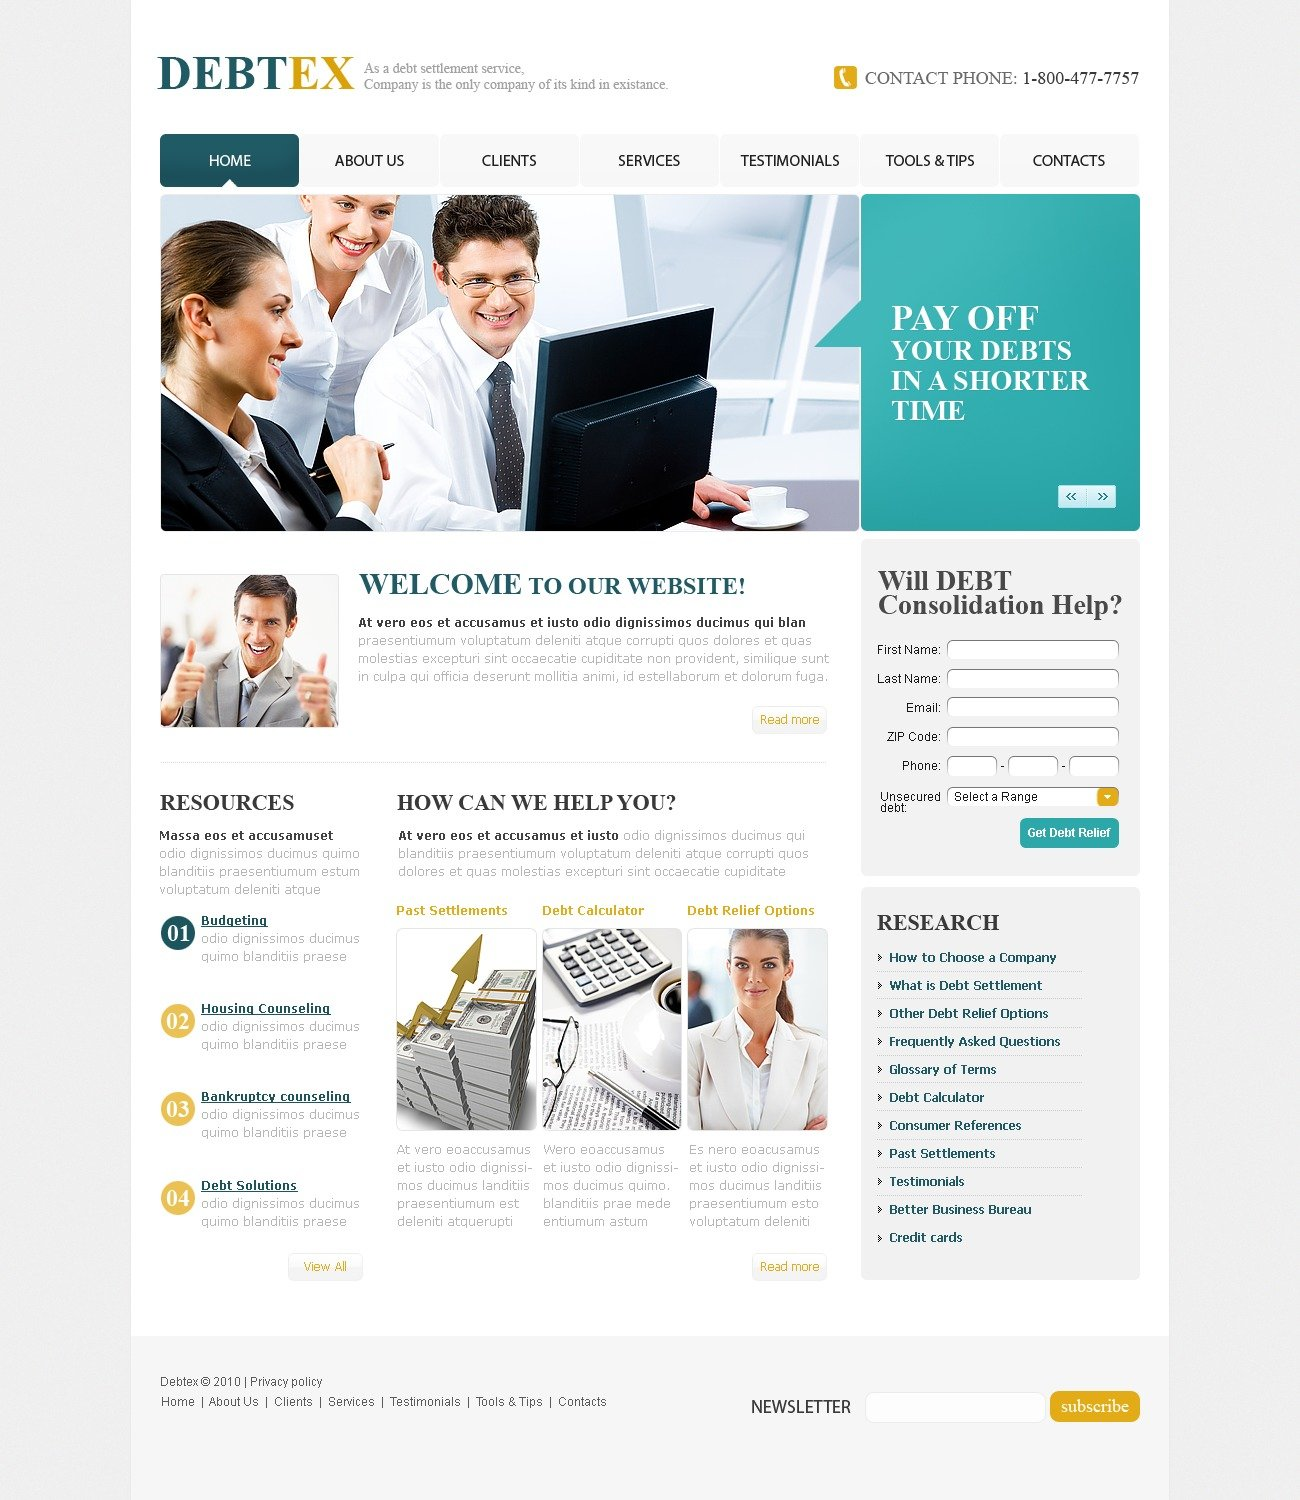 The Debtex Business Company PSD Design 54455, one of the best PSD templates of its kind (business, flash 8, wide), also known as debtex business company PSD template, corporate solutions PSD template, innovations PSD template, contacts PSD template, service PSD template, support PSD template, information dealer PSD template, stocks PSD template, team PSD template, success PSD template, money PSD template, marketing PSD template, director PSD template, manager PSD template, analytics PSD template, planning PSD template, limited PSD template, office PSD template, sales and related with debtex business company, corporate solutions, innovations, contacts, service, support, information dealer, stocks, team, success, money, marketing, director, manager, analytics, planning, limited, office, sales, etc.